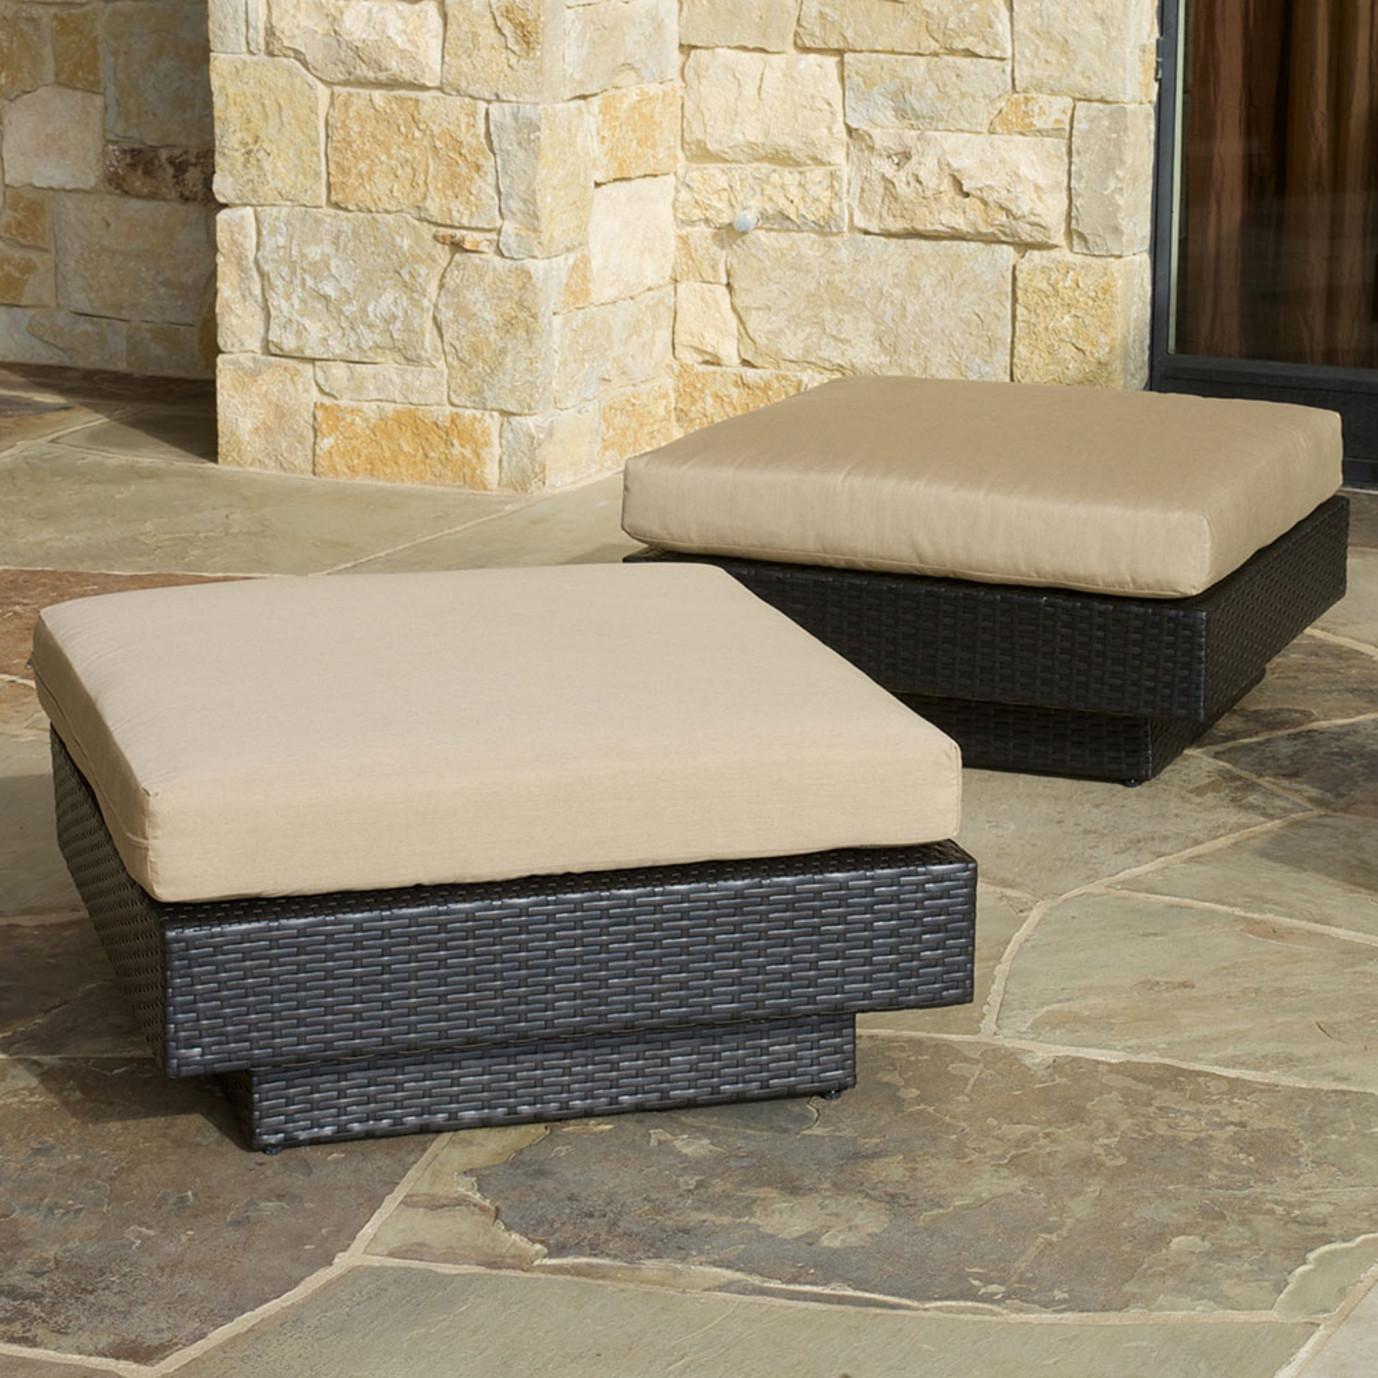 Portofino™ Comfort 23pc Grand Estate Collection - Heather Beige